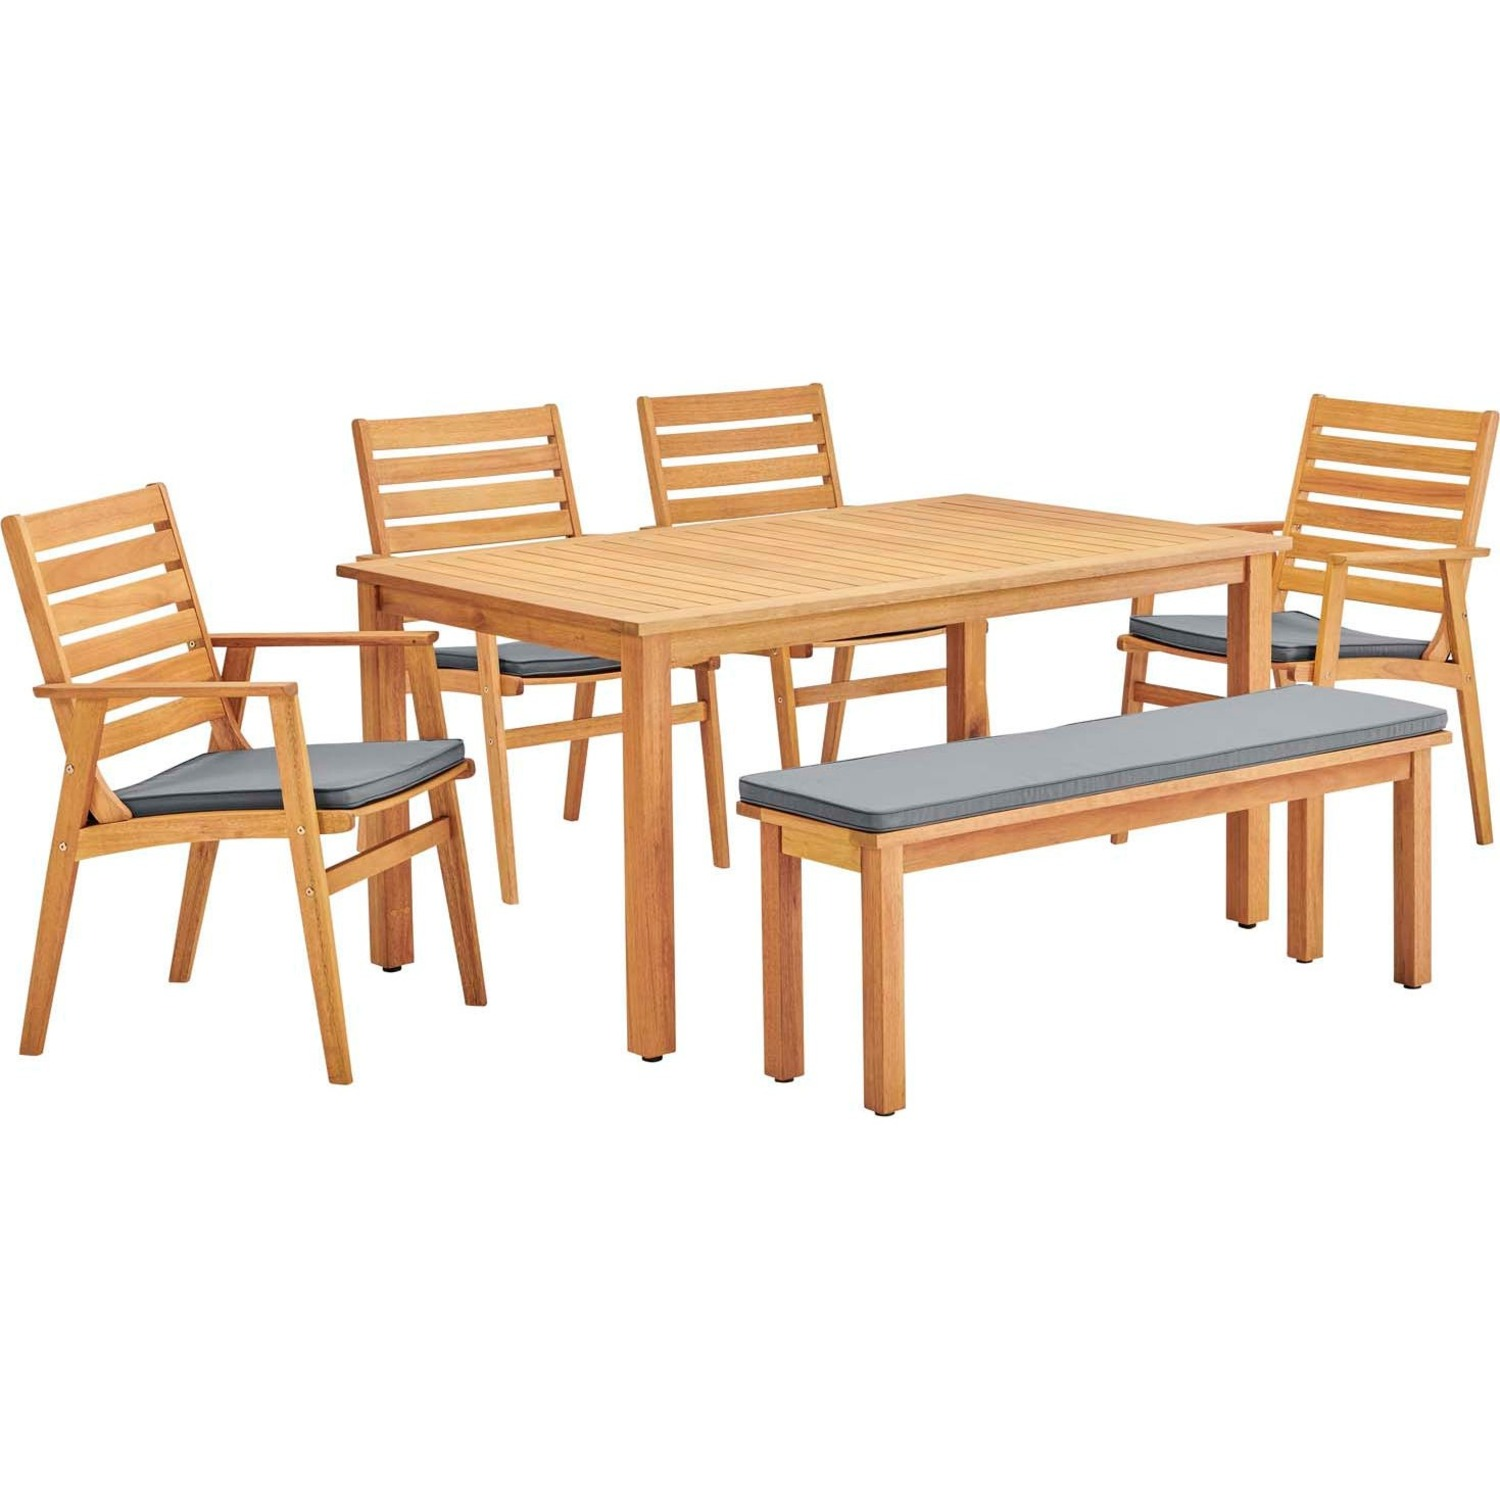 6-Piece Outdoor Patio Set In Natural Gray Wood - image-0